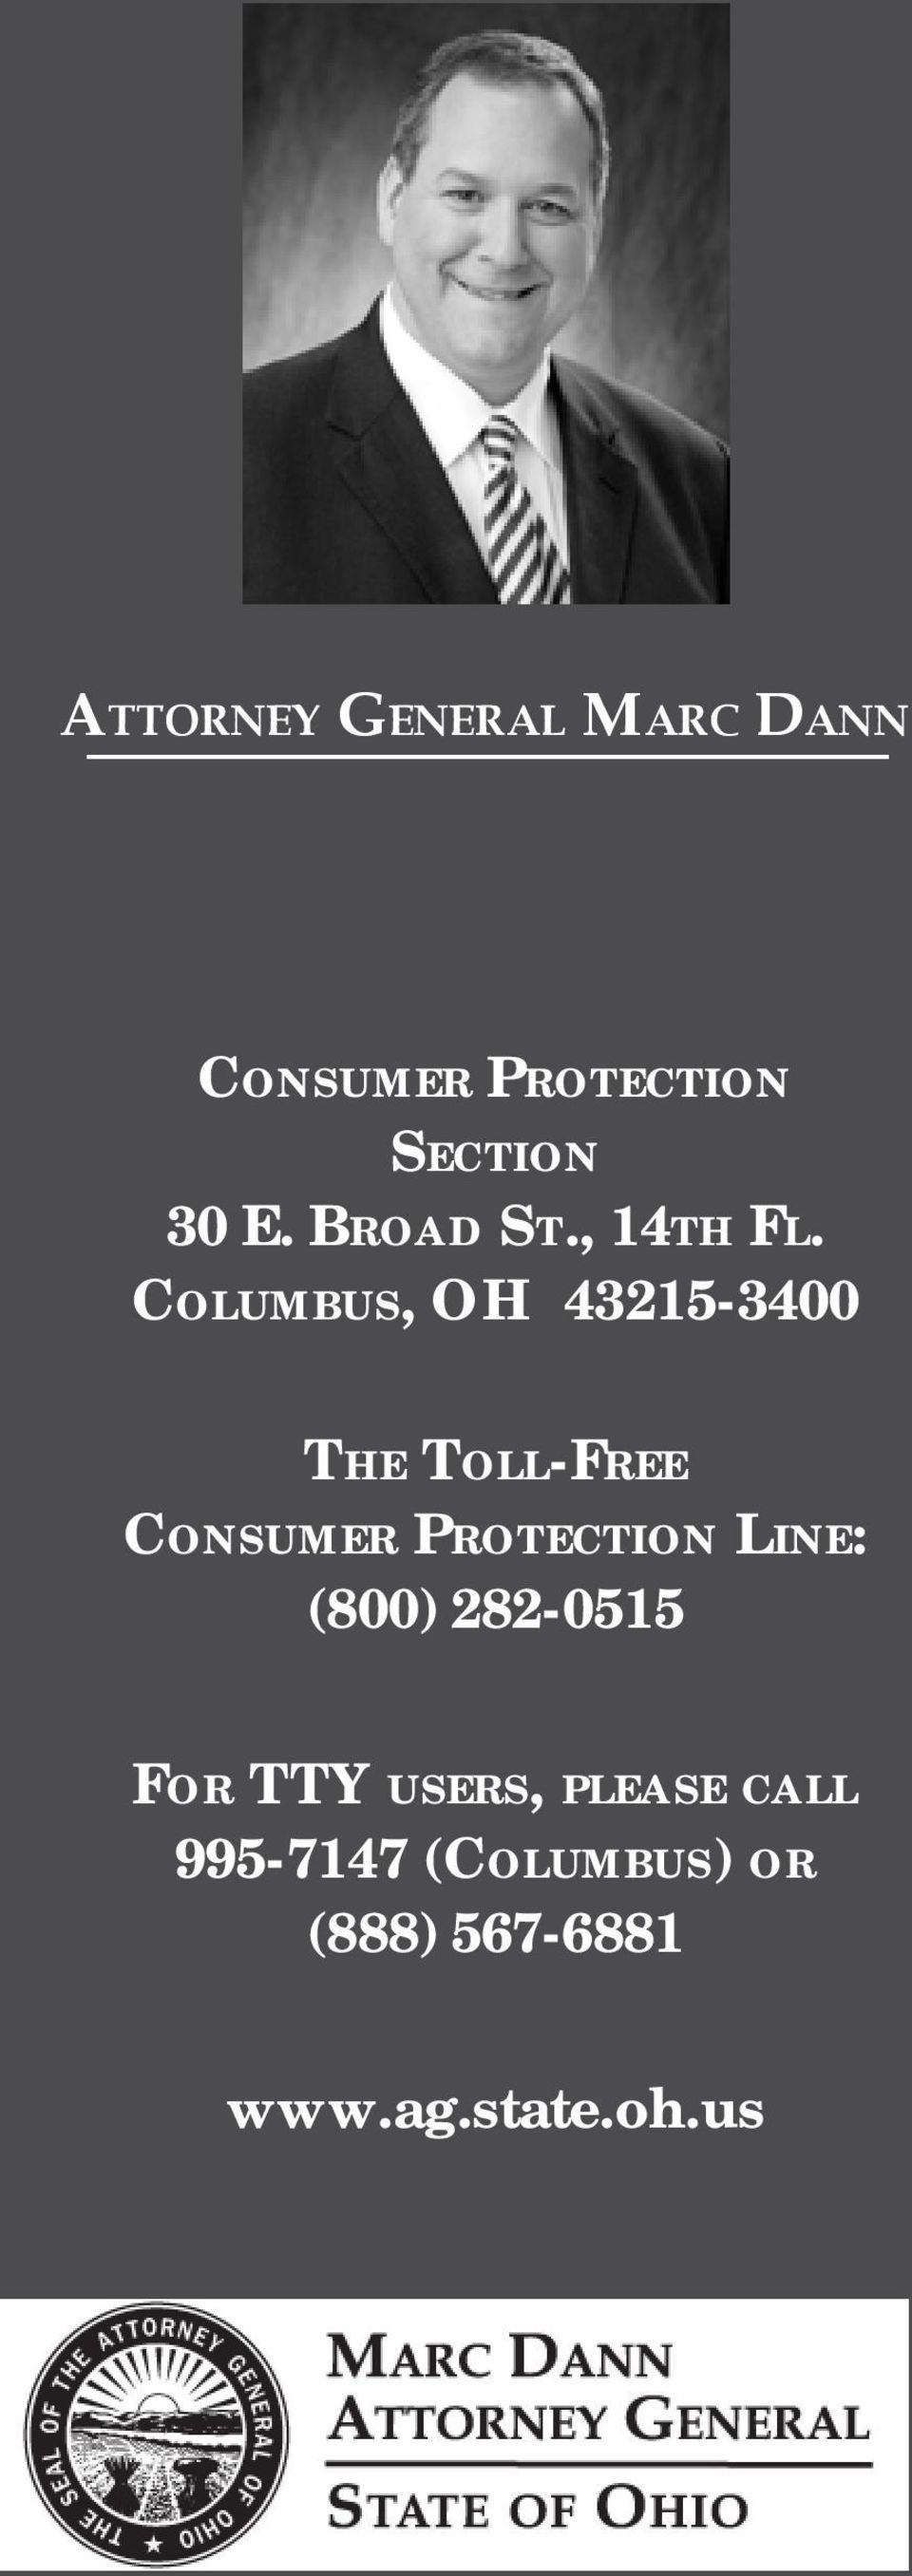 COLUMBUS, OH 43215-3400 THE TOLL-FREE CONSUMER PROTECTION